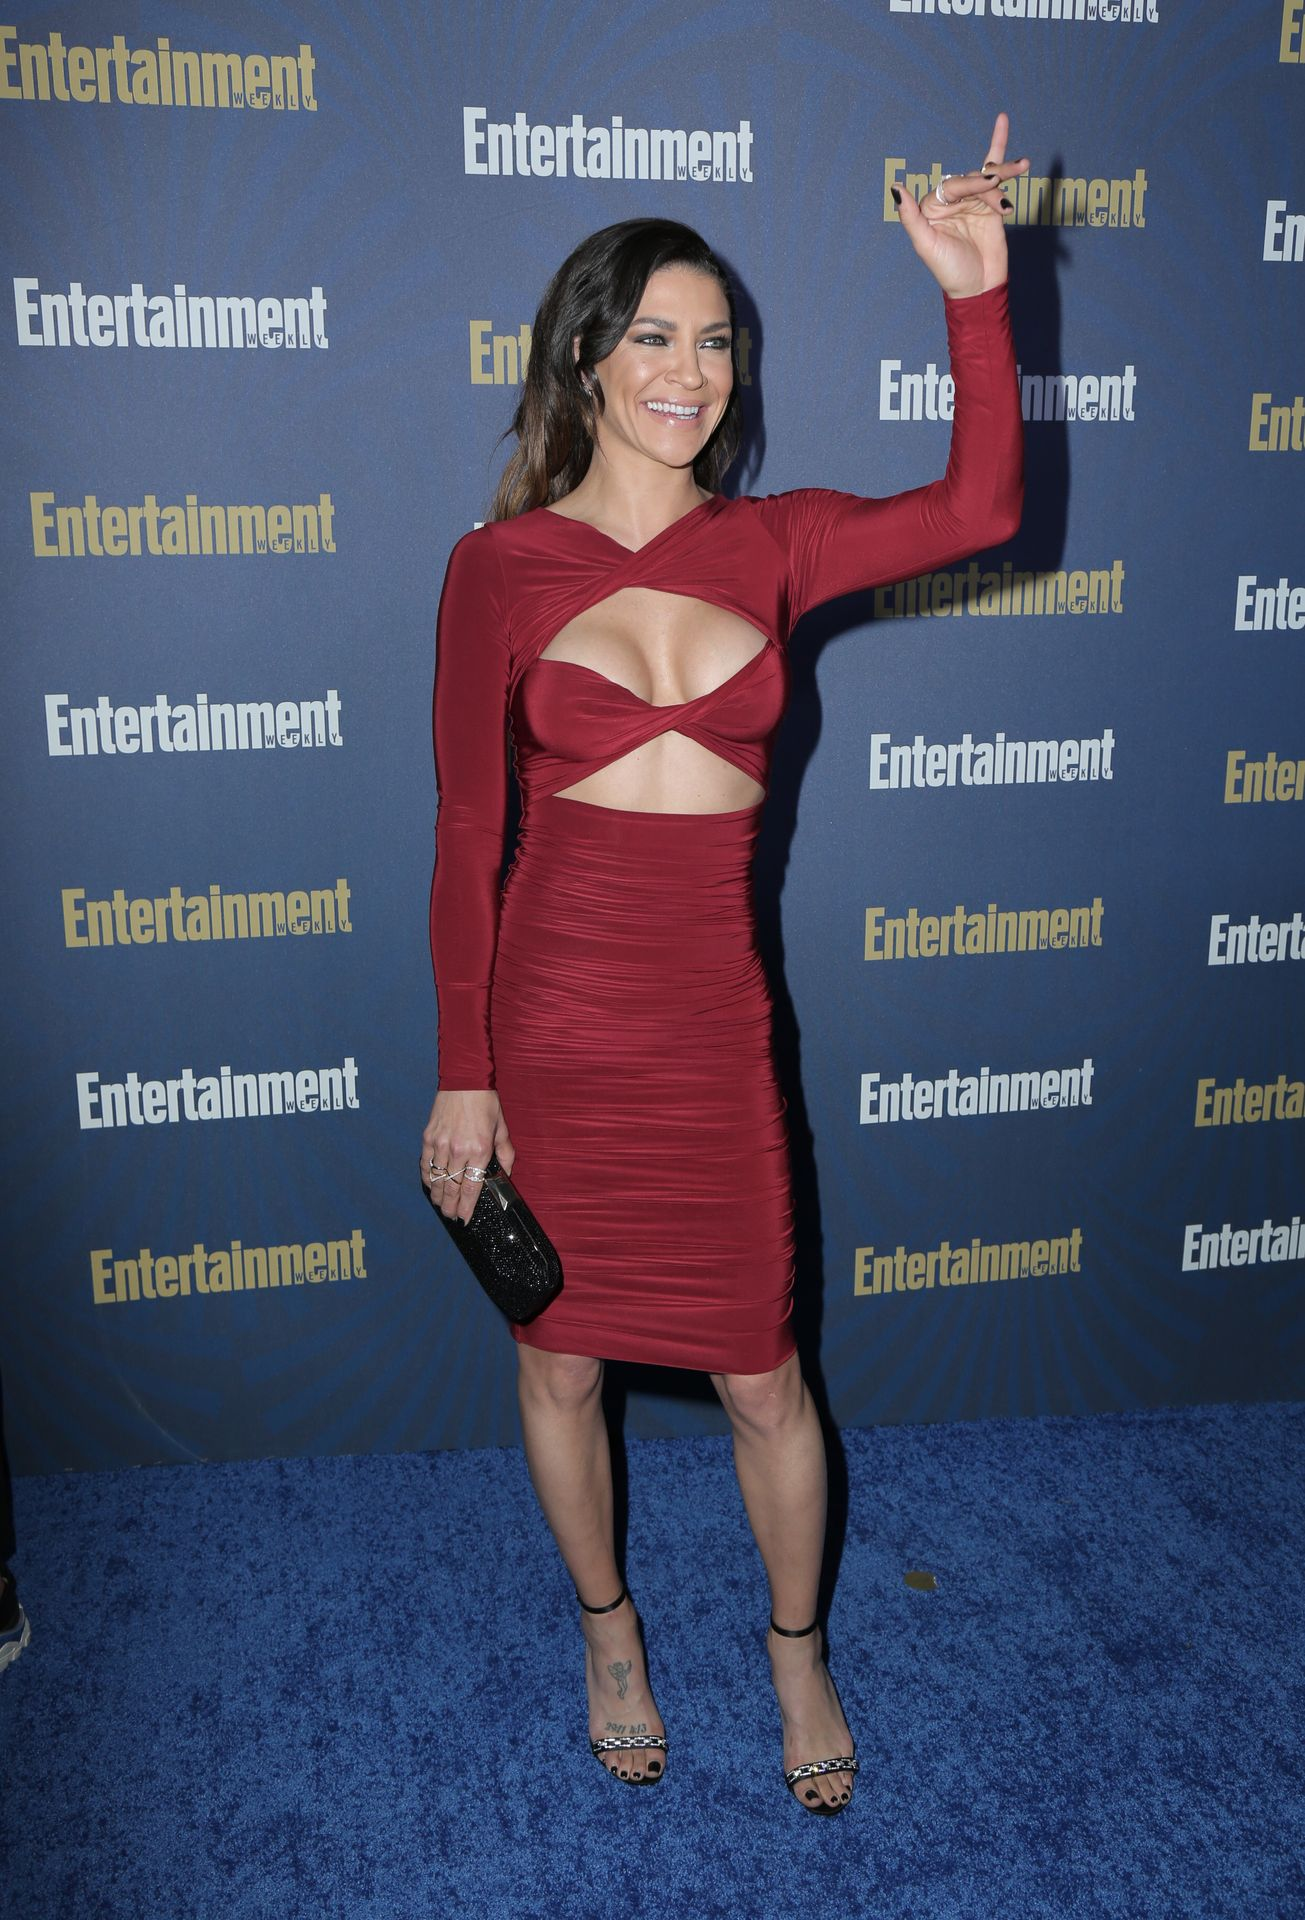 Jessica Szohr Shows Her Cleavage At The Entertainment Weekly Pre Sag Awards Celebration 0012